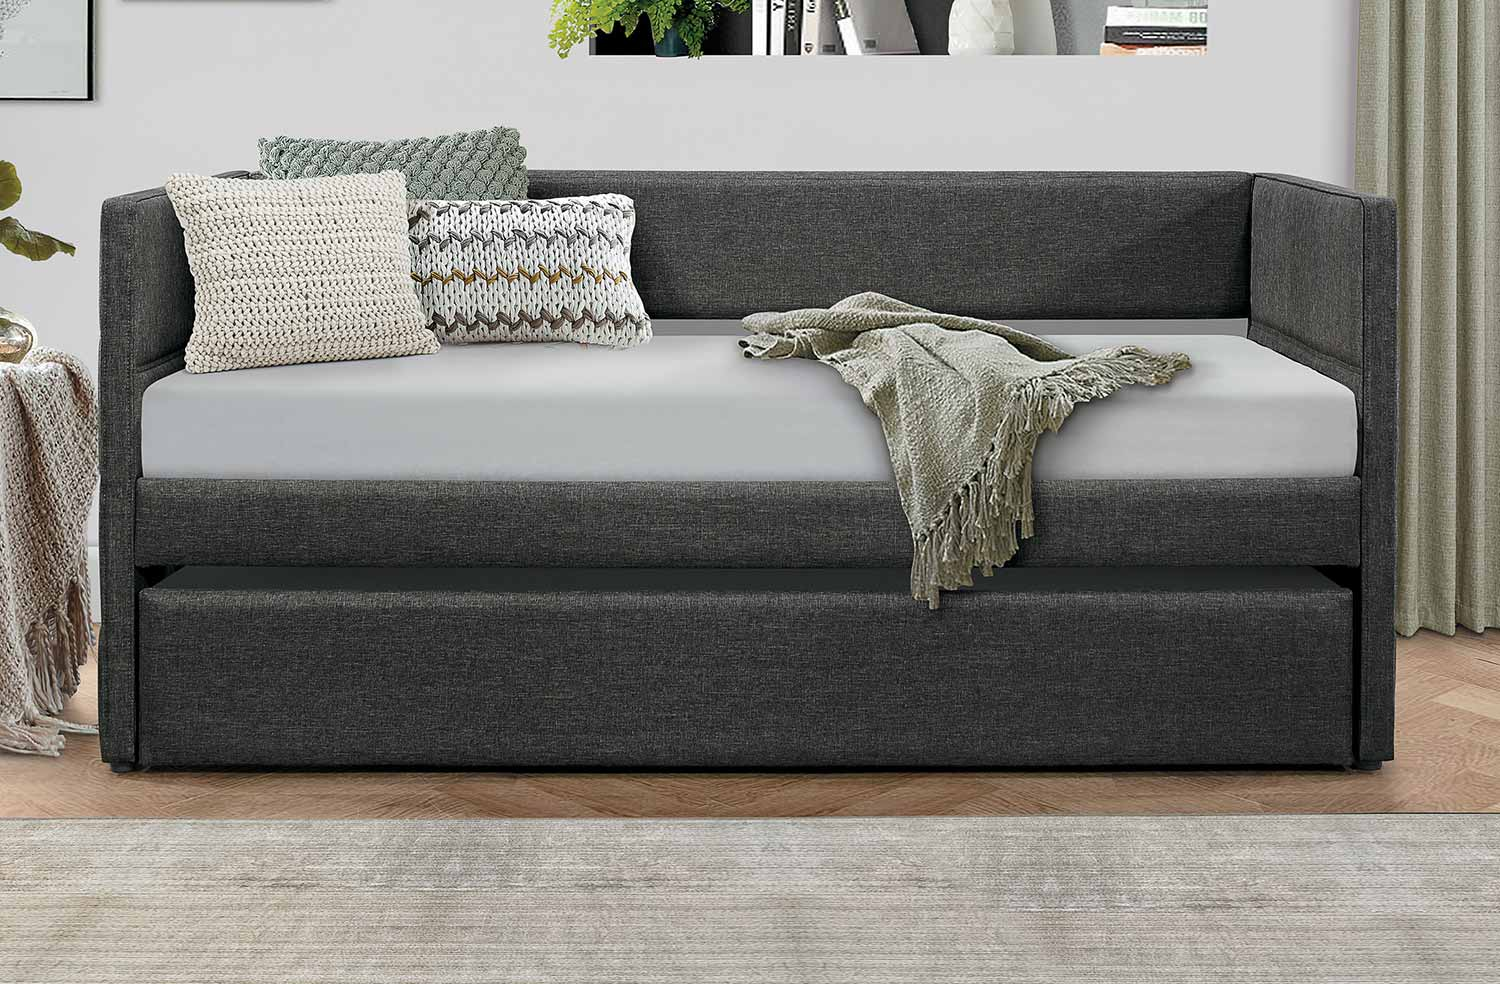 Homelegance Vining Daybed with Trundle - Dark Gray